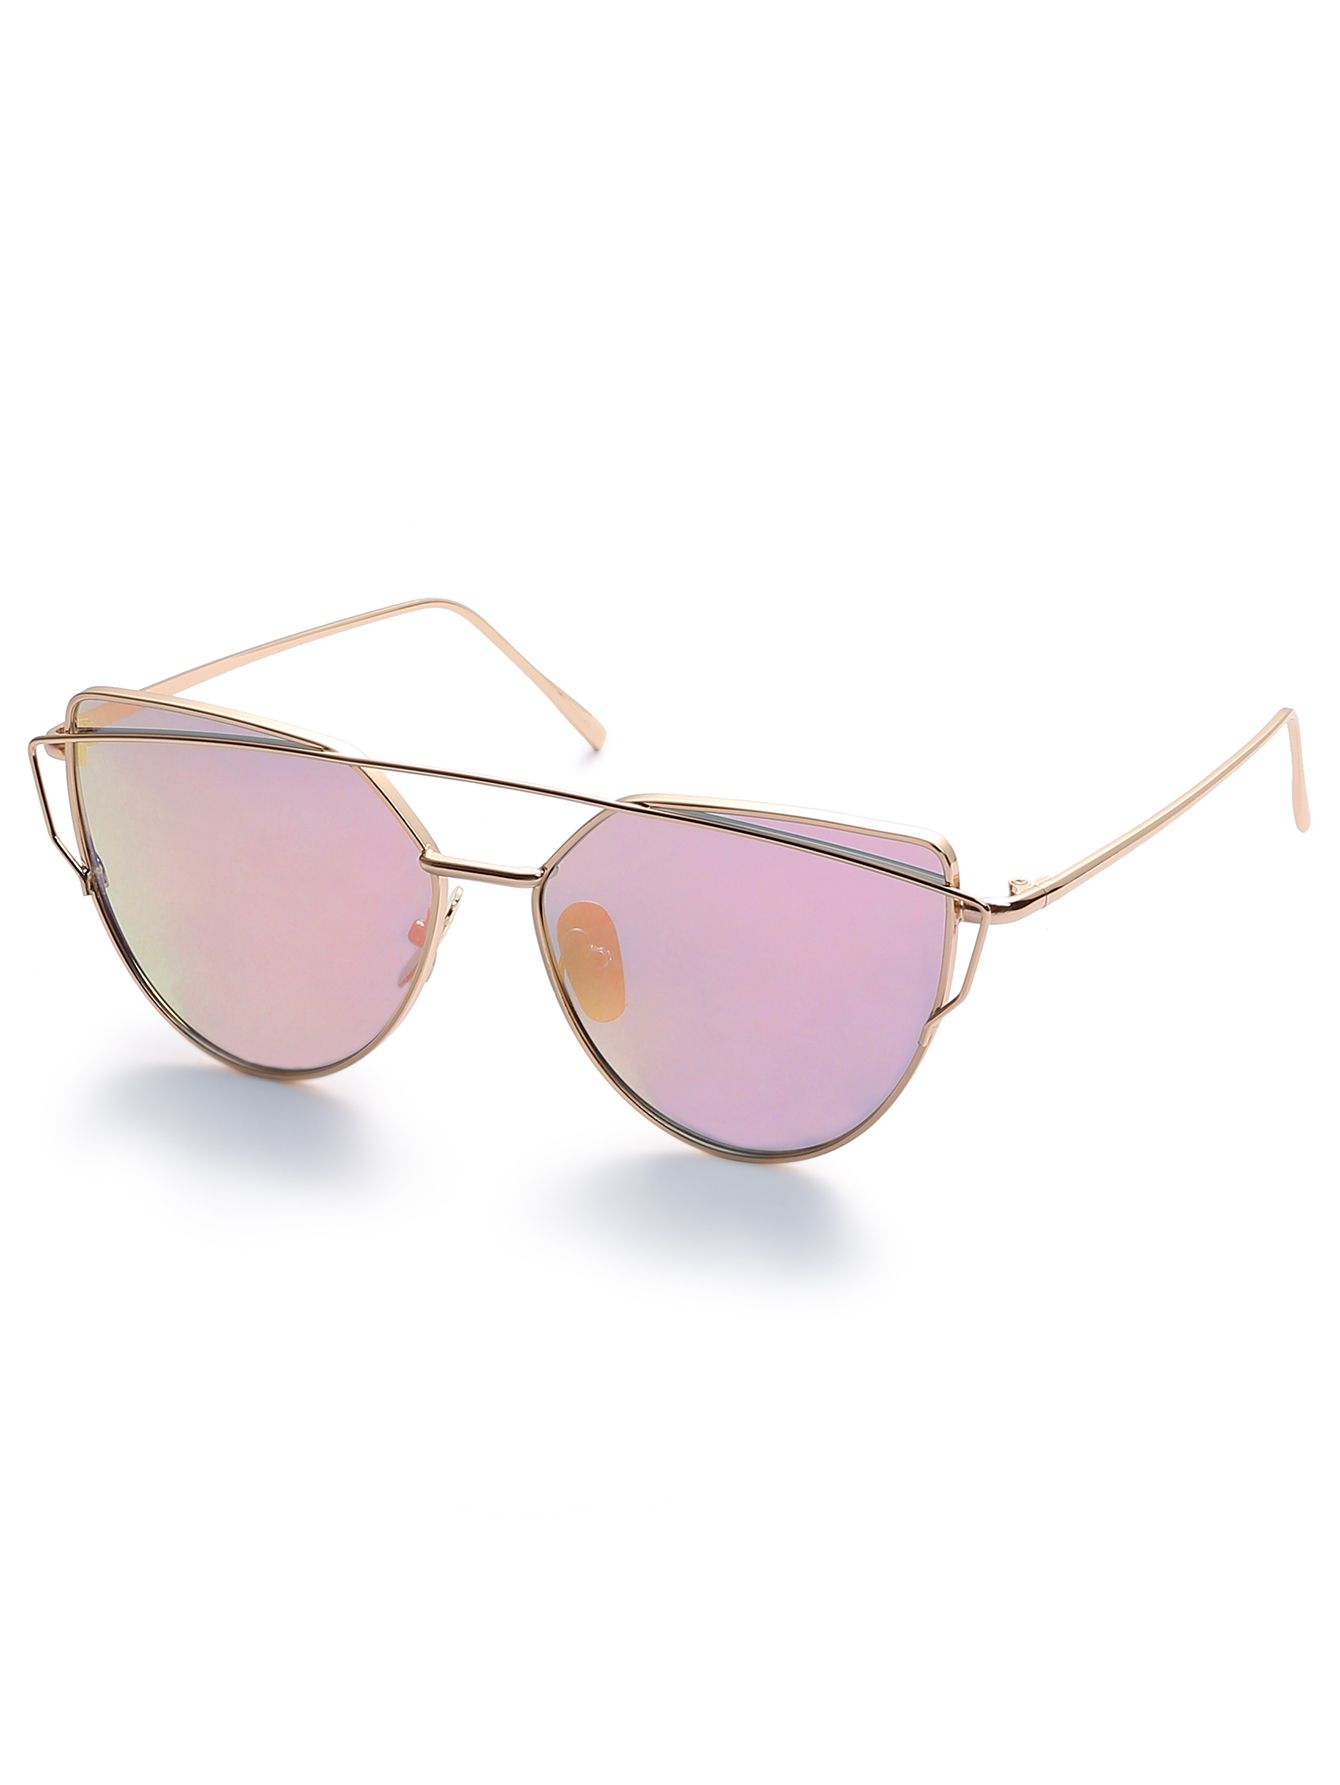 2533db05ff Gold Metal Frame Double Bridge Pink Lens Sunglasses